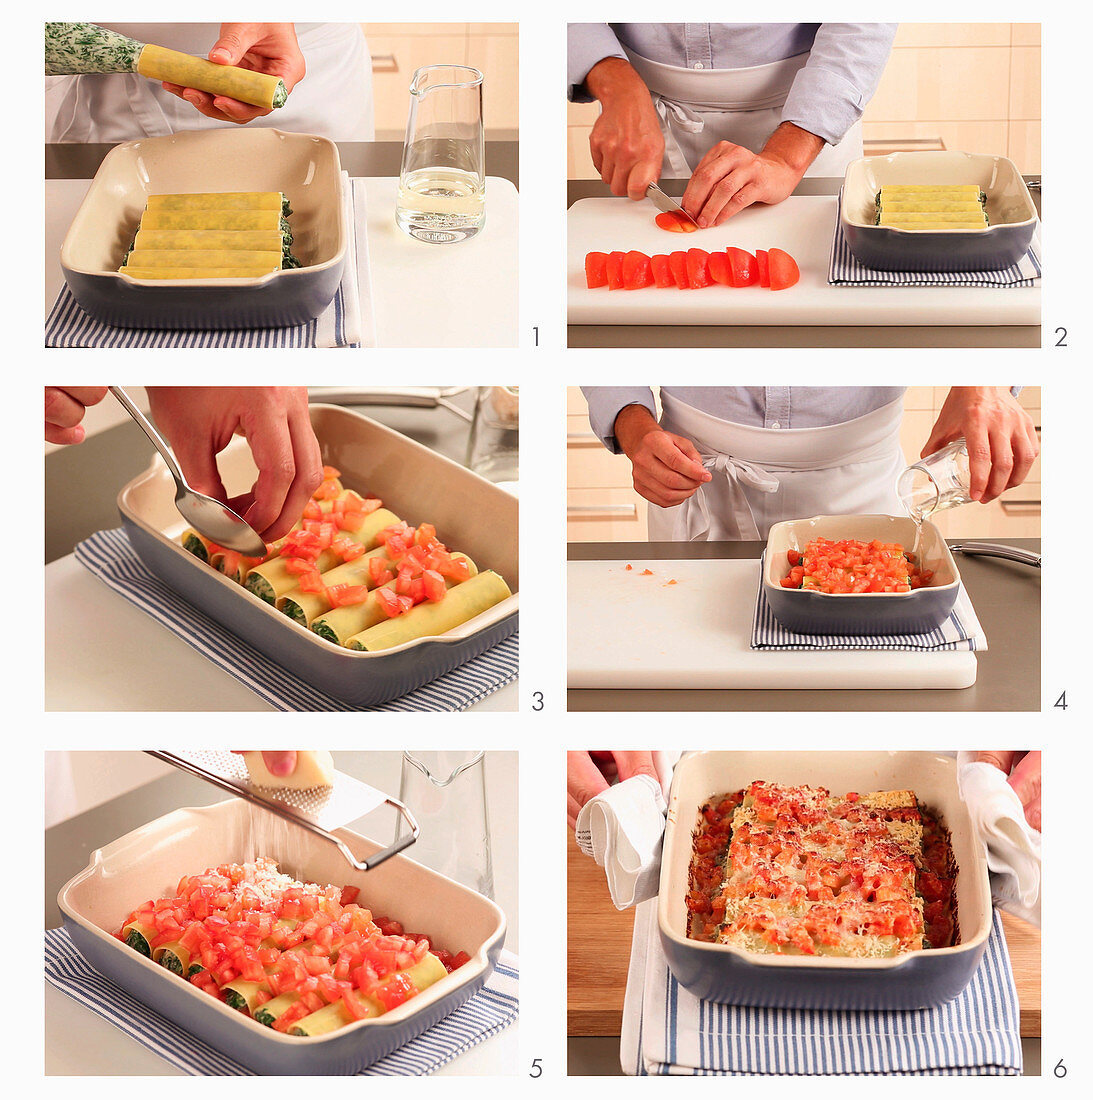 Cannelloni with a spinach and ricotta filling and tomatoes being made